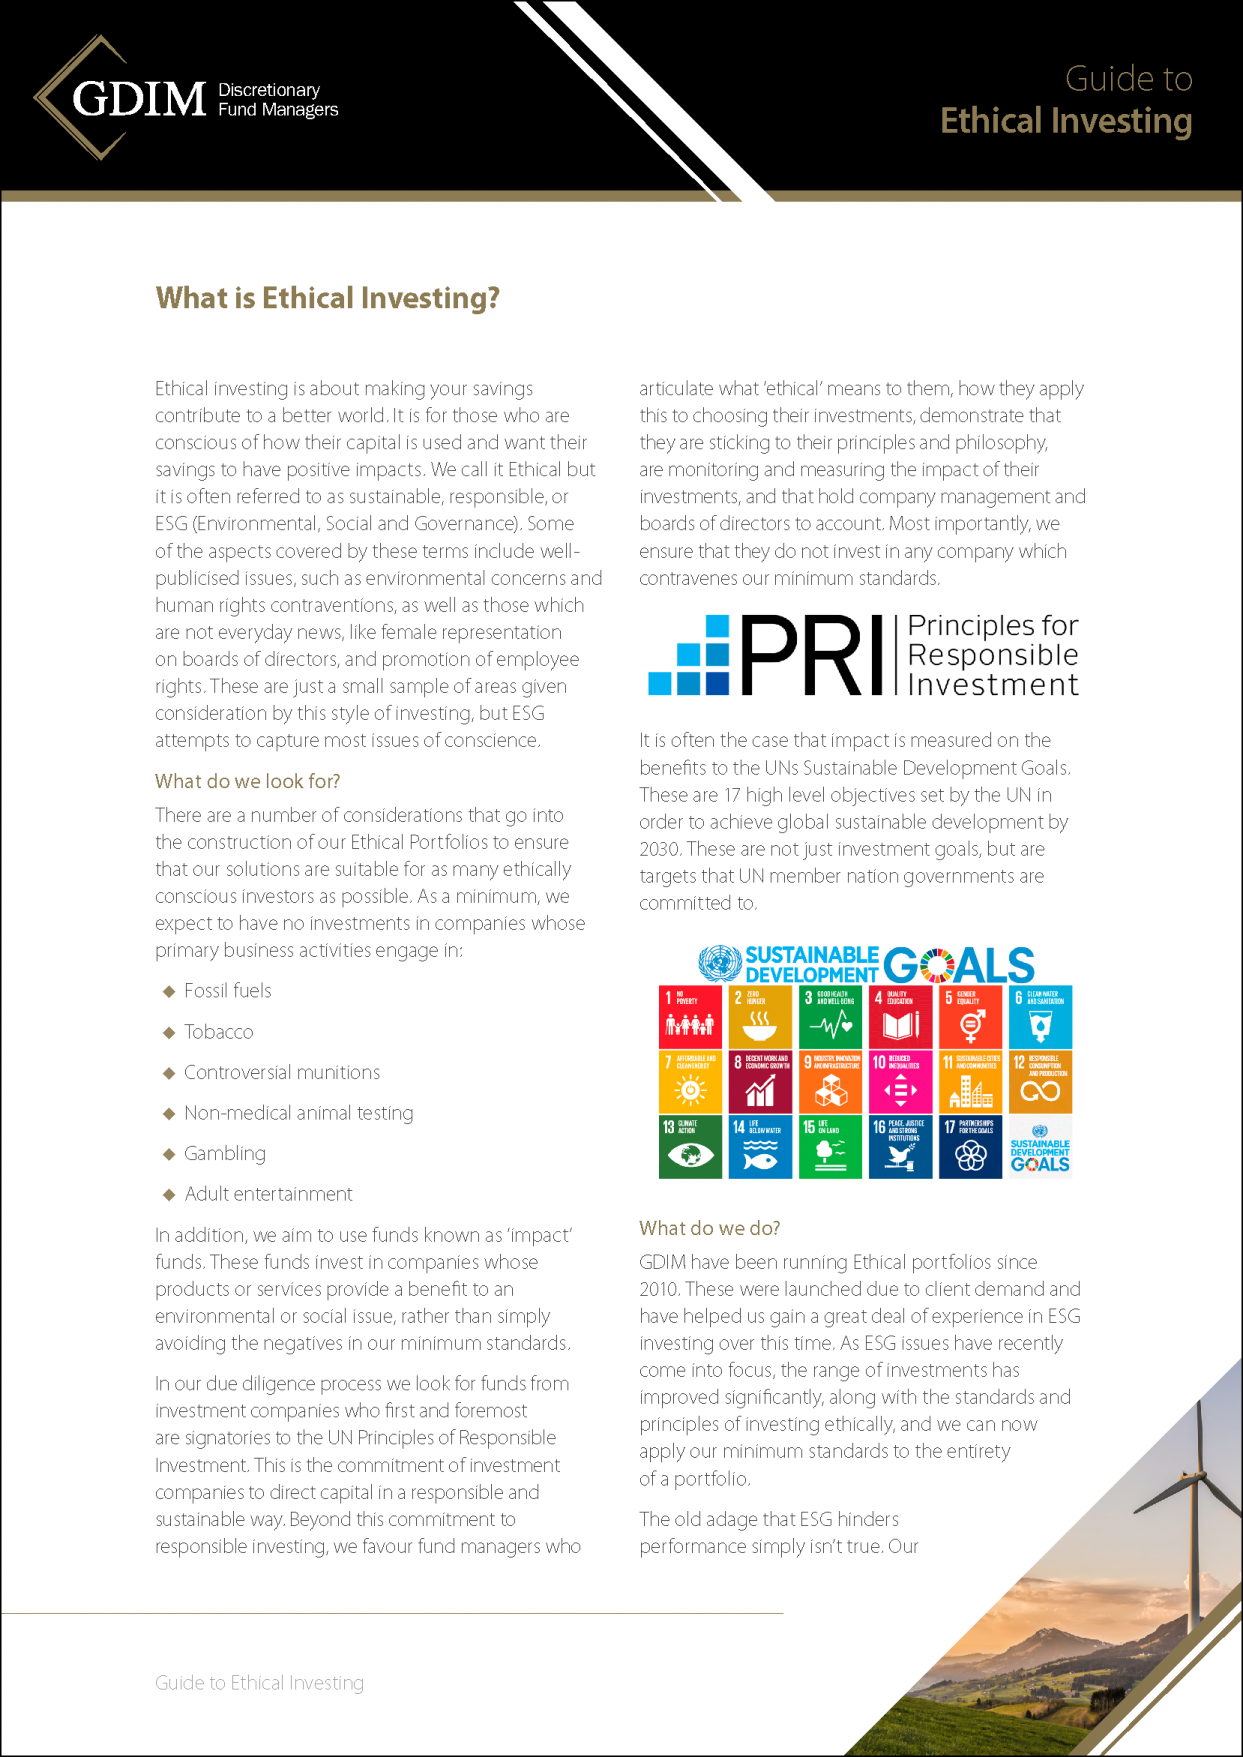 GDIM Guide to Ethical Investing